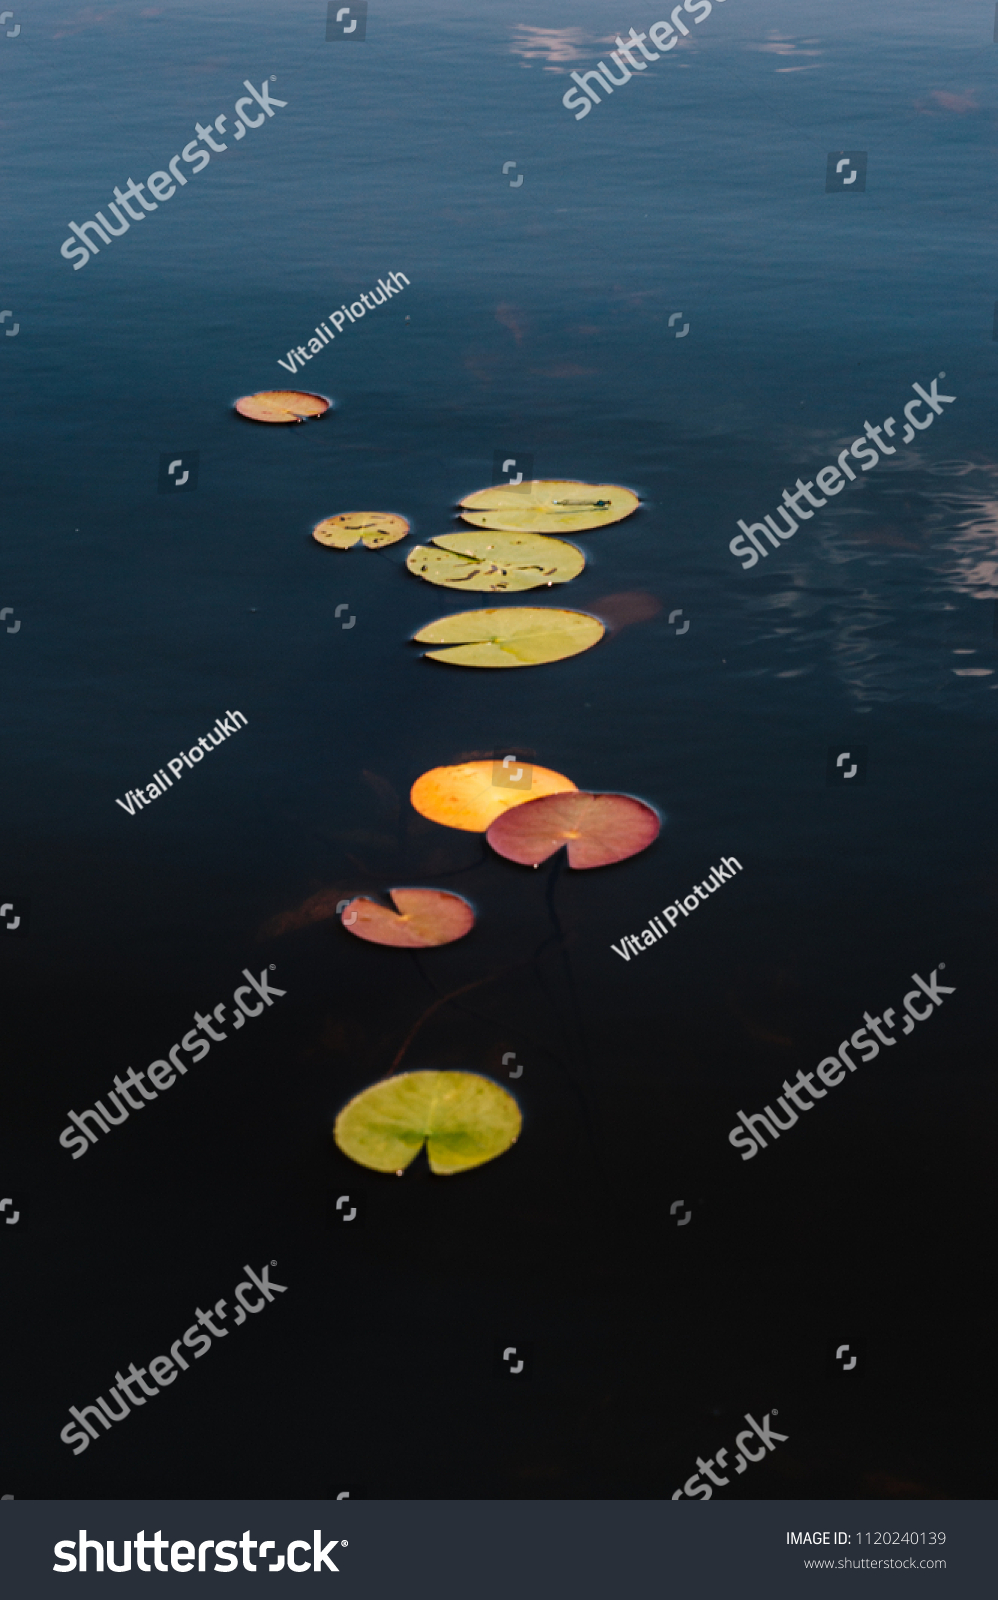 hight resolution of leaves of water lilies